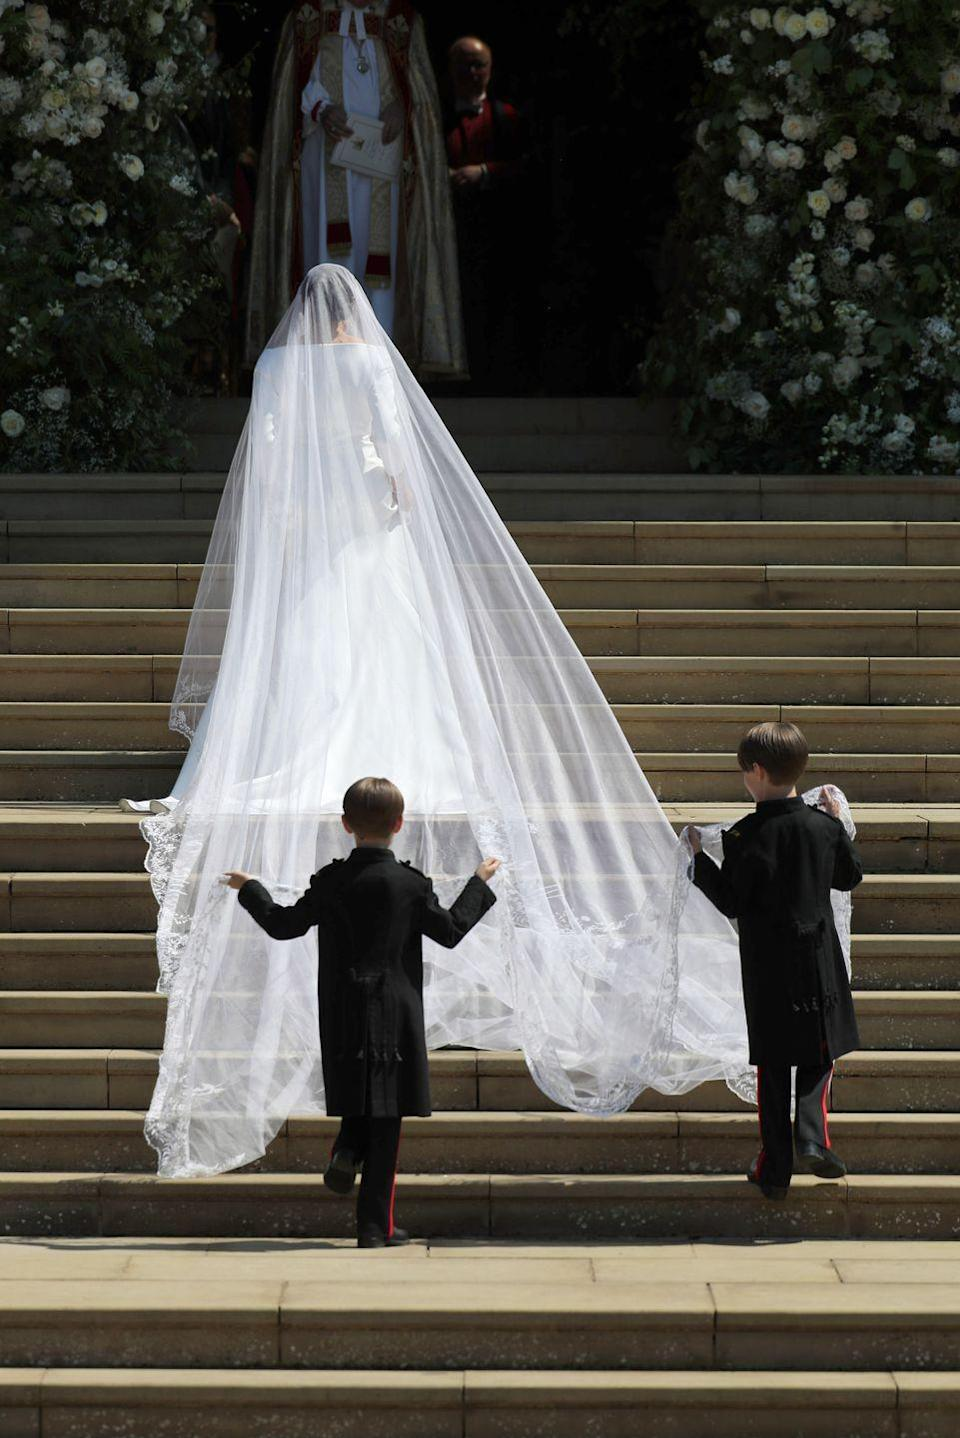 """<p>Much longer than her sister-in-law's veil, Meghan surprised her groom and <a href=""""https://www.harpersbazaar.com/celebrity/latest/a23376285/meghan-markle-wedding-veil-commonwealth-flowers-prince-harry-surprise/"""" rel=""""nofollow noopener"""" target=""""_blank"""" data-ylk=""""slk:paid homage"""" class=""""link rapid-noclick-resp"""">paid homage</a> to her new home by featuring flowers from all 53 of the countries in the British Commonwealth on it.</p>"""